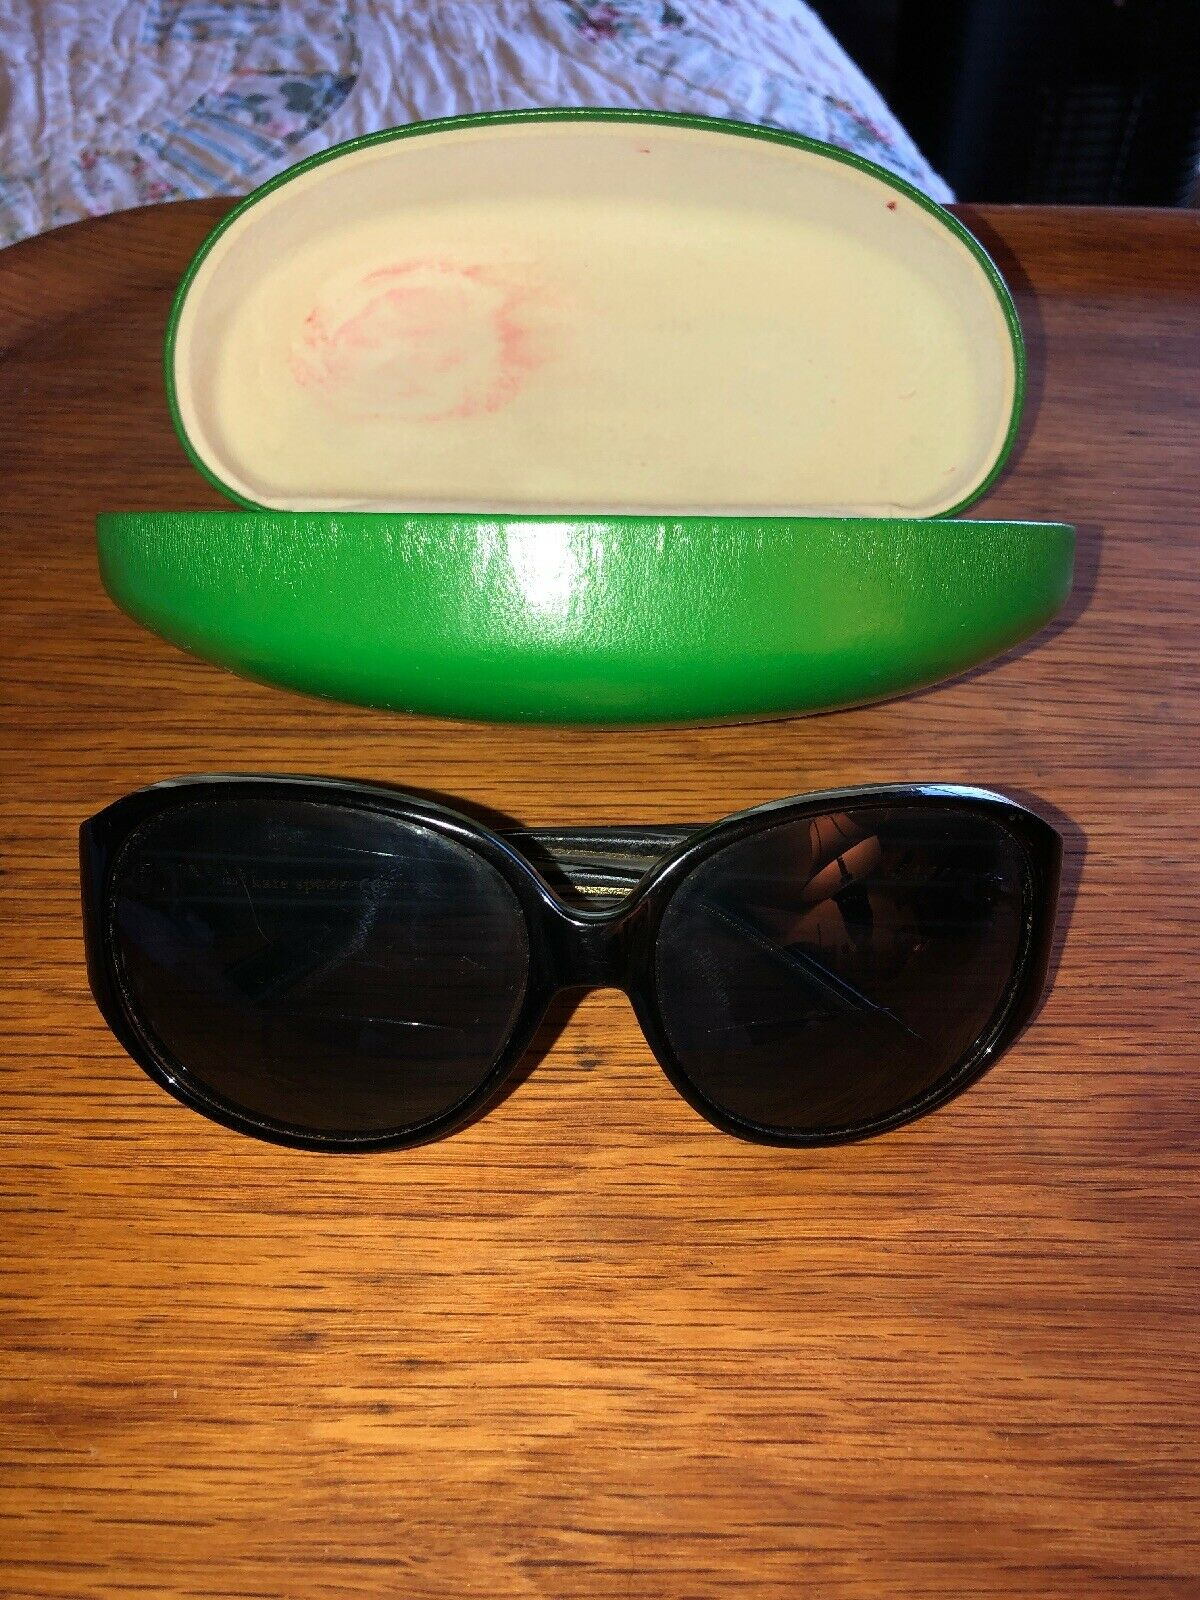 Kate Spade Women's Reading/Bifocal Sunglasses With Green Case